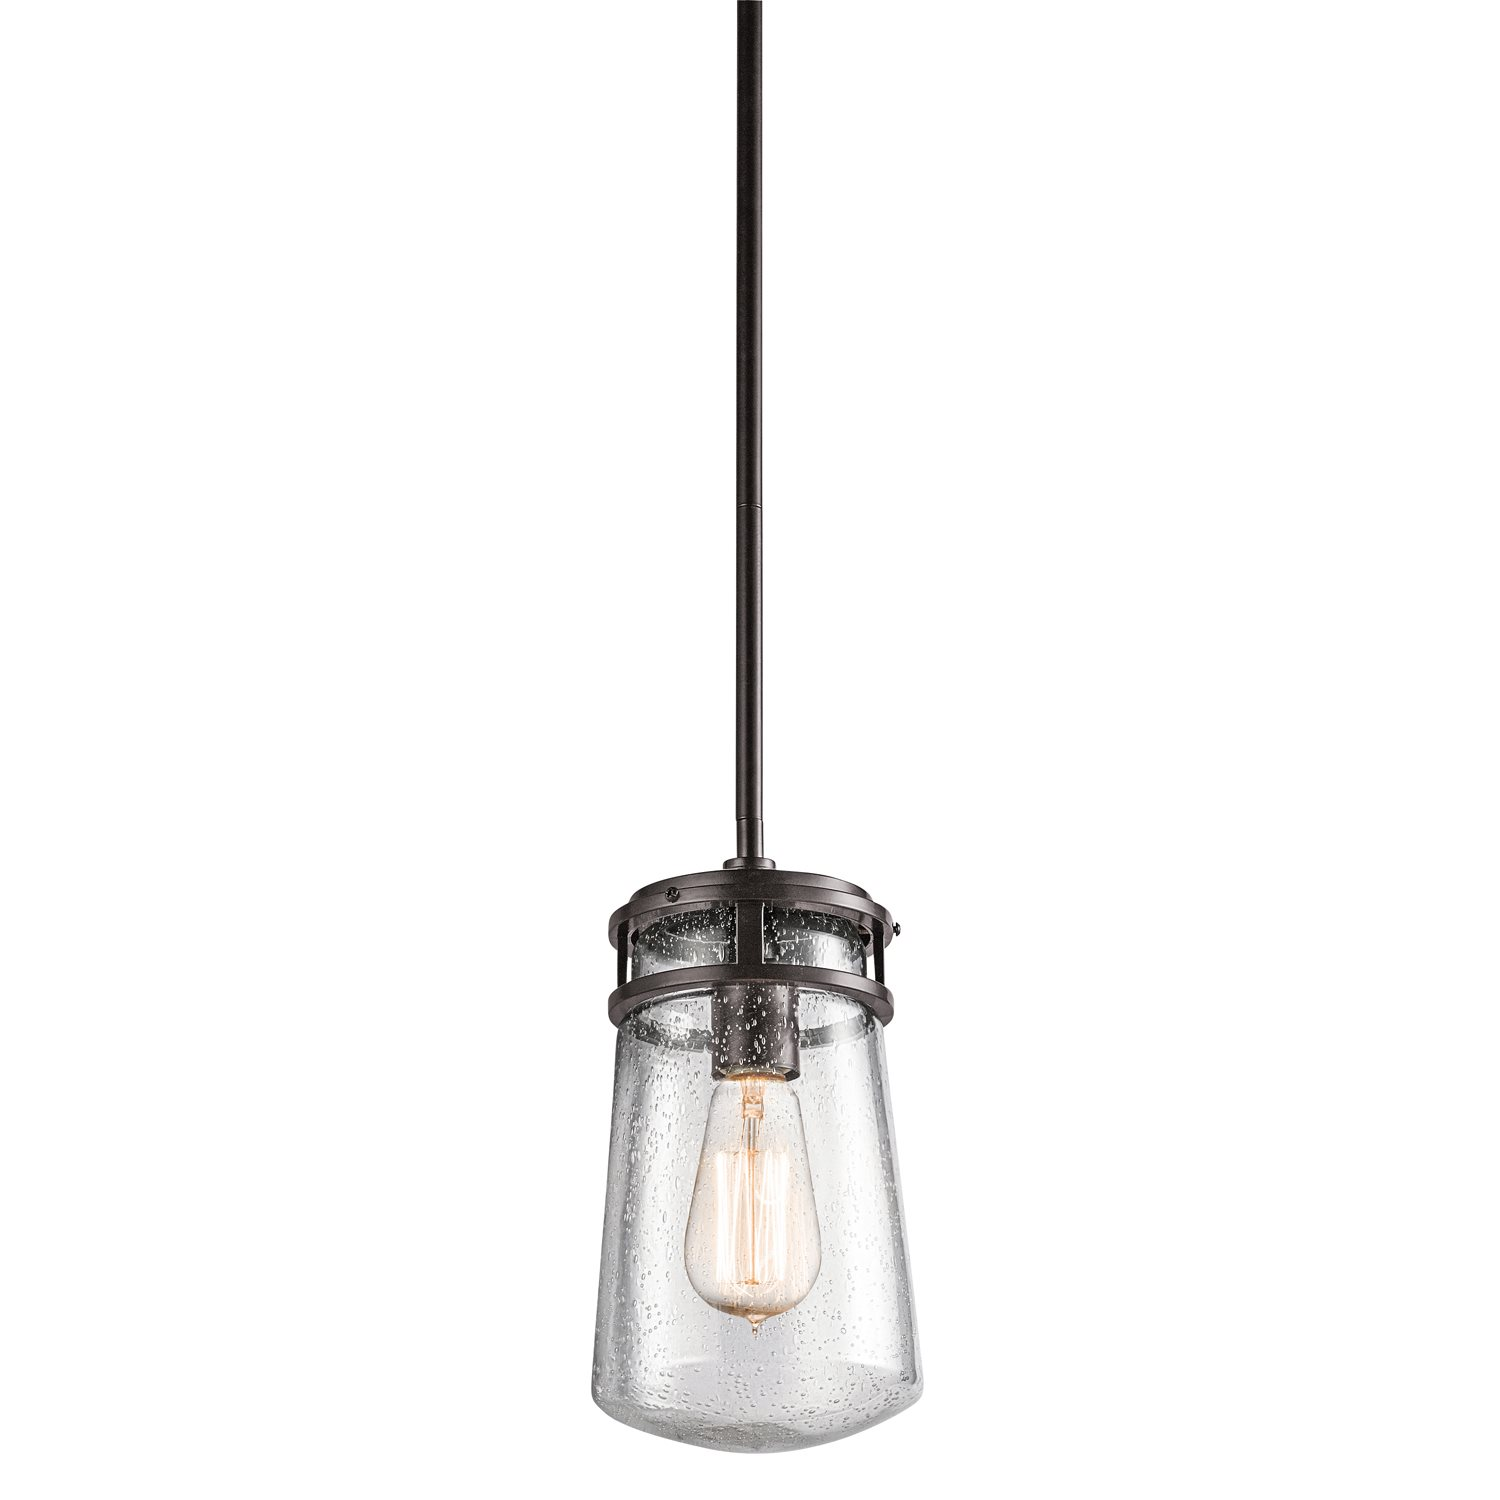 Kichler lighting 49447az lyndon rustic lodge log cabin Outdoor pendant lighting